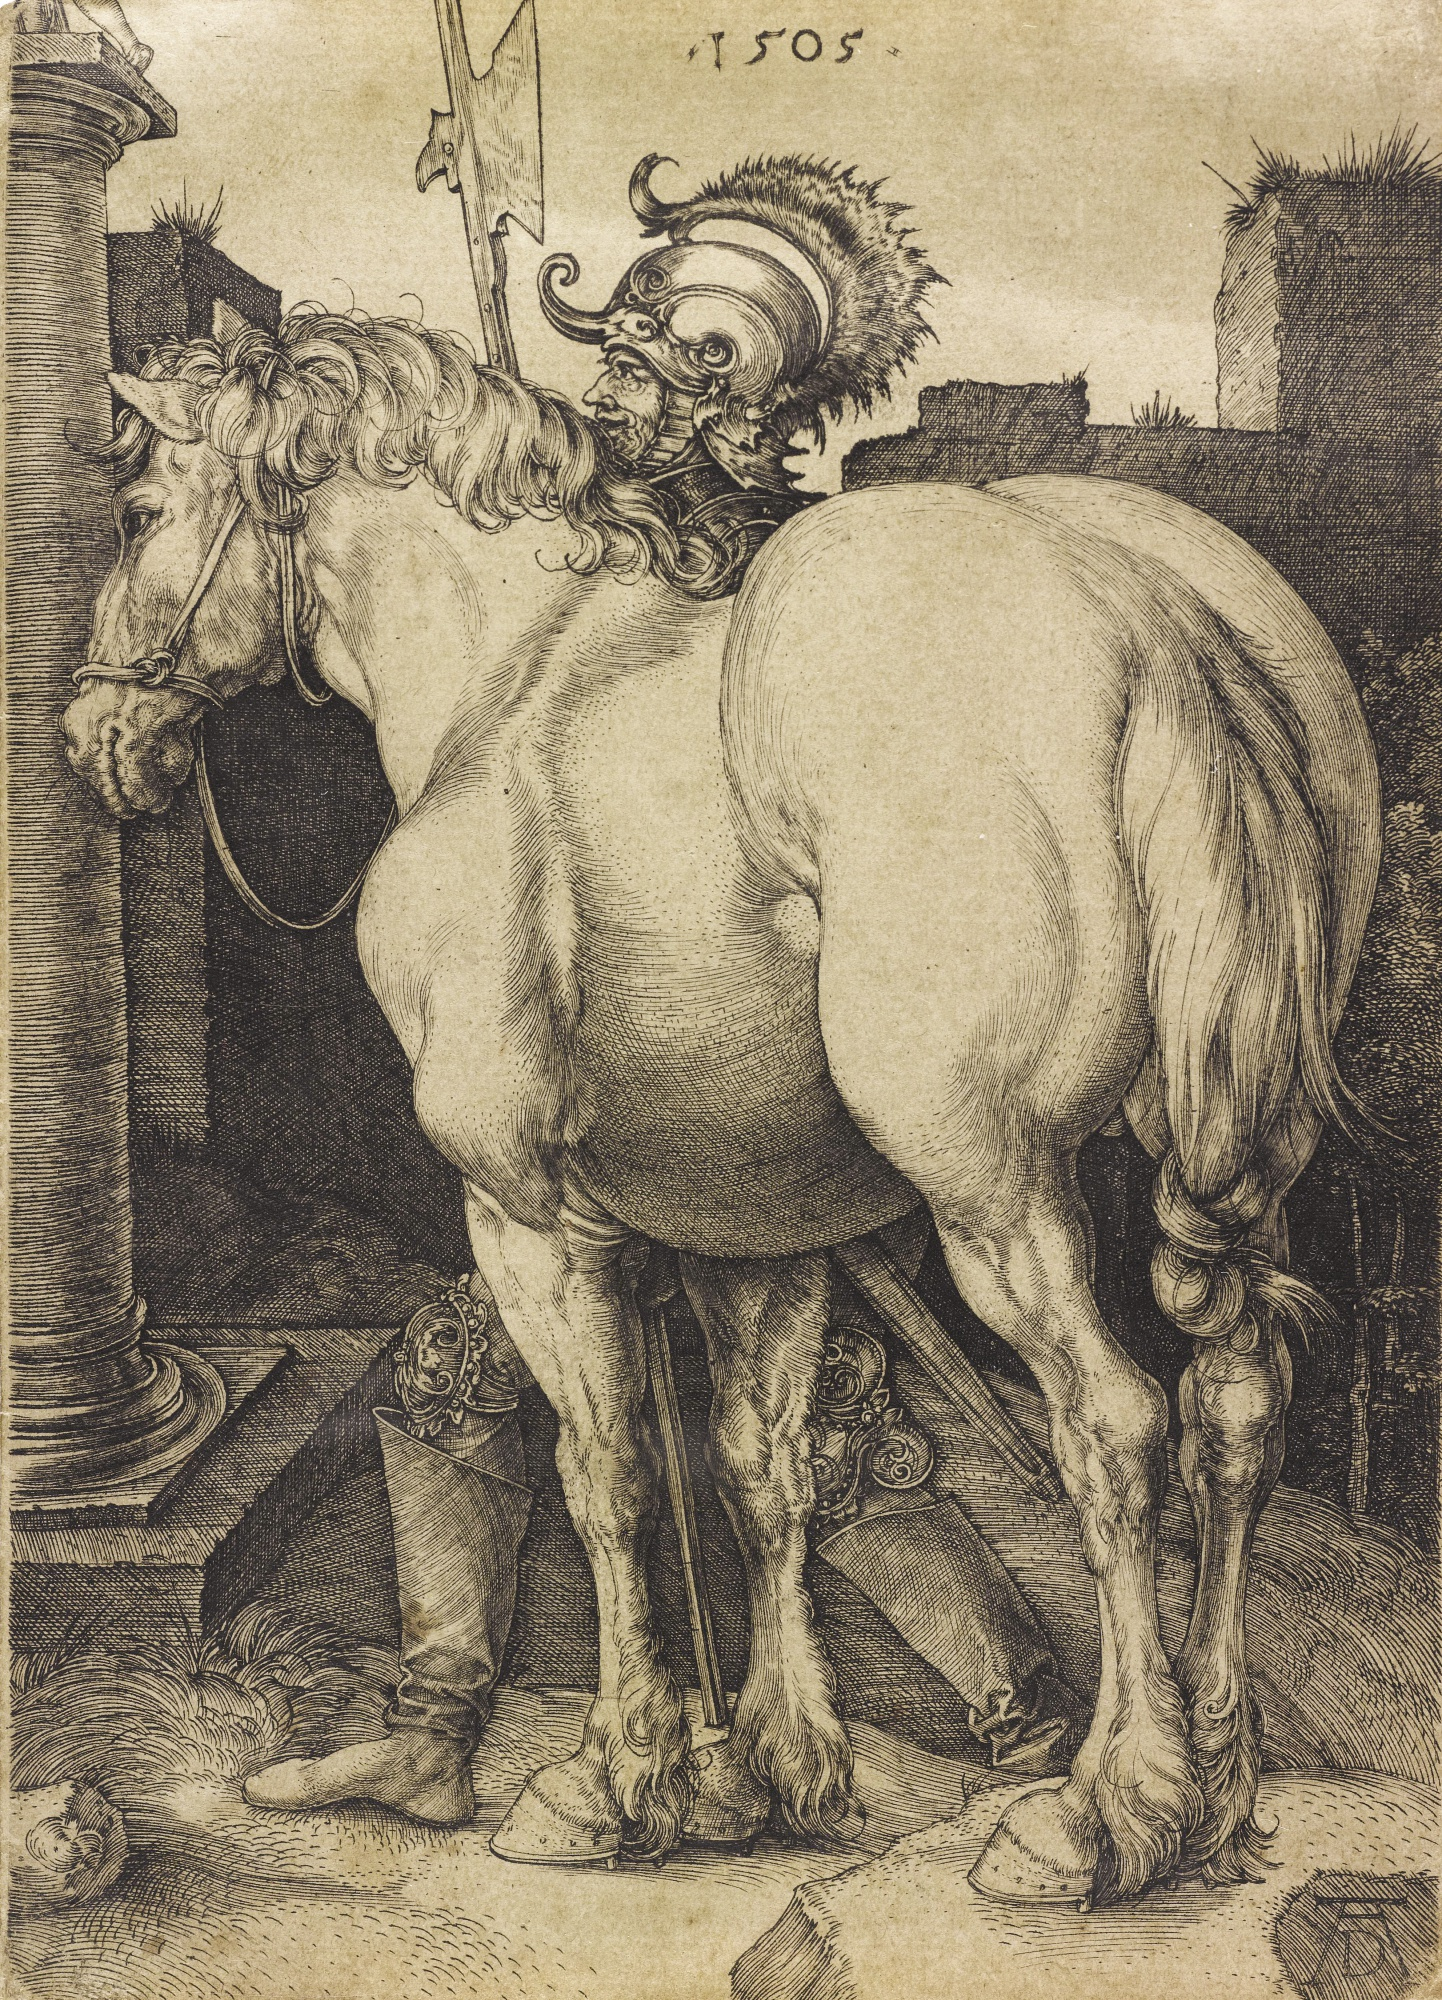 Albrecht Durer-The Large Horse  (B. 97; M. Holl. 94)-1505